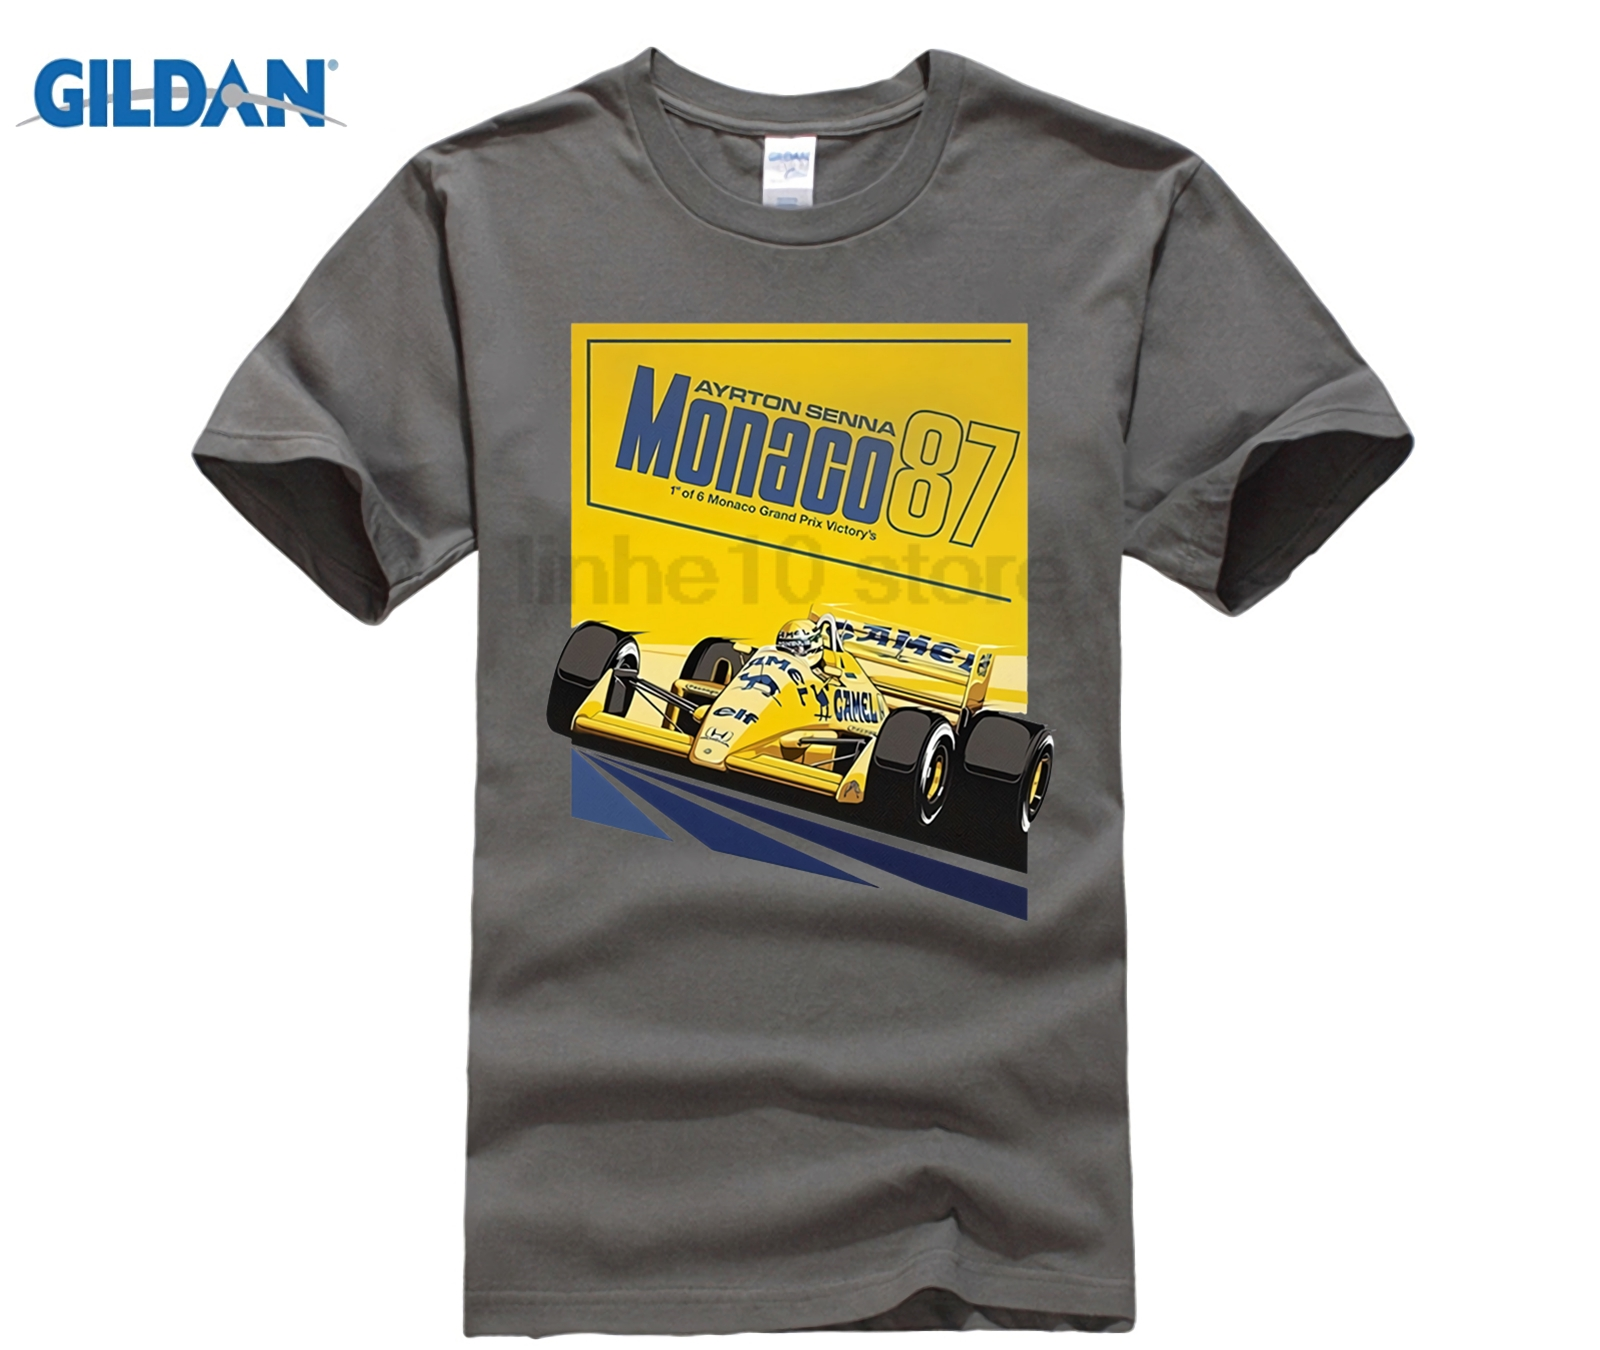 gildan-new-arrival-ayrton-font-b-senna-b-font-87-poster-tops-t-shirt-1-car-men-round-collar-short-sleeve-t-shirts